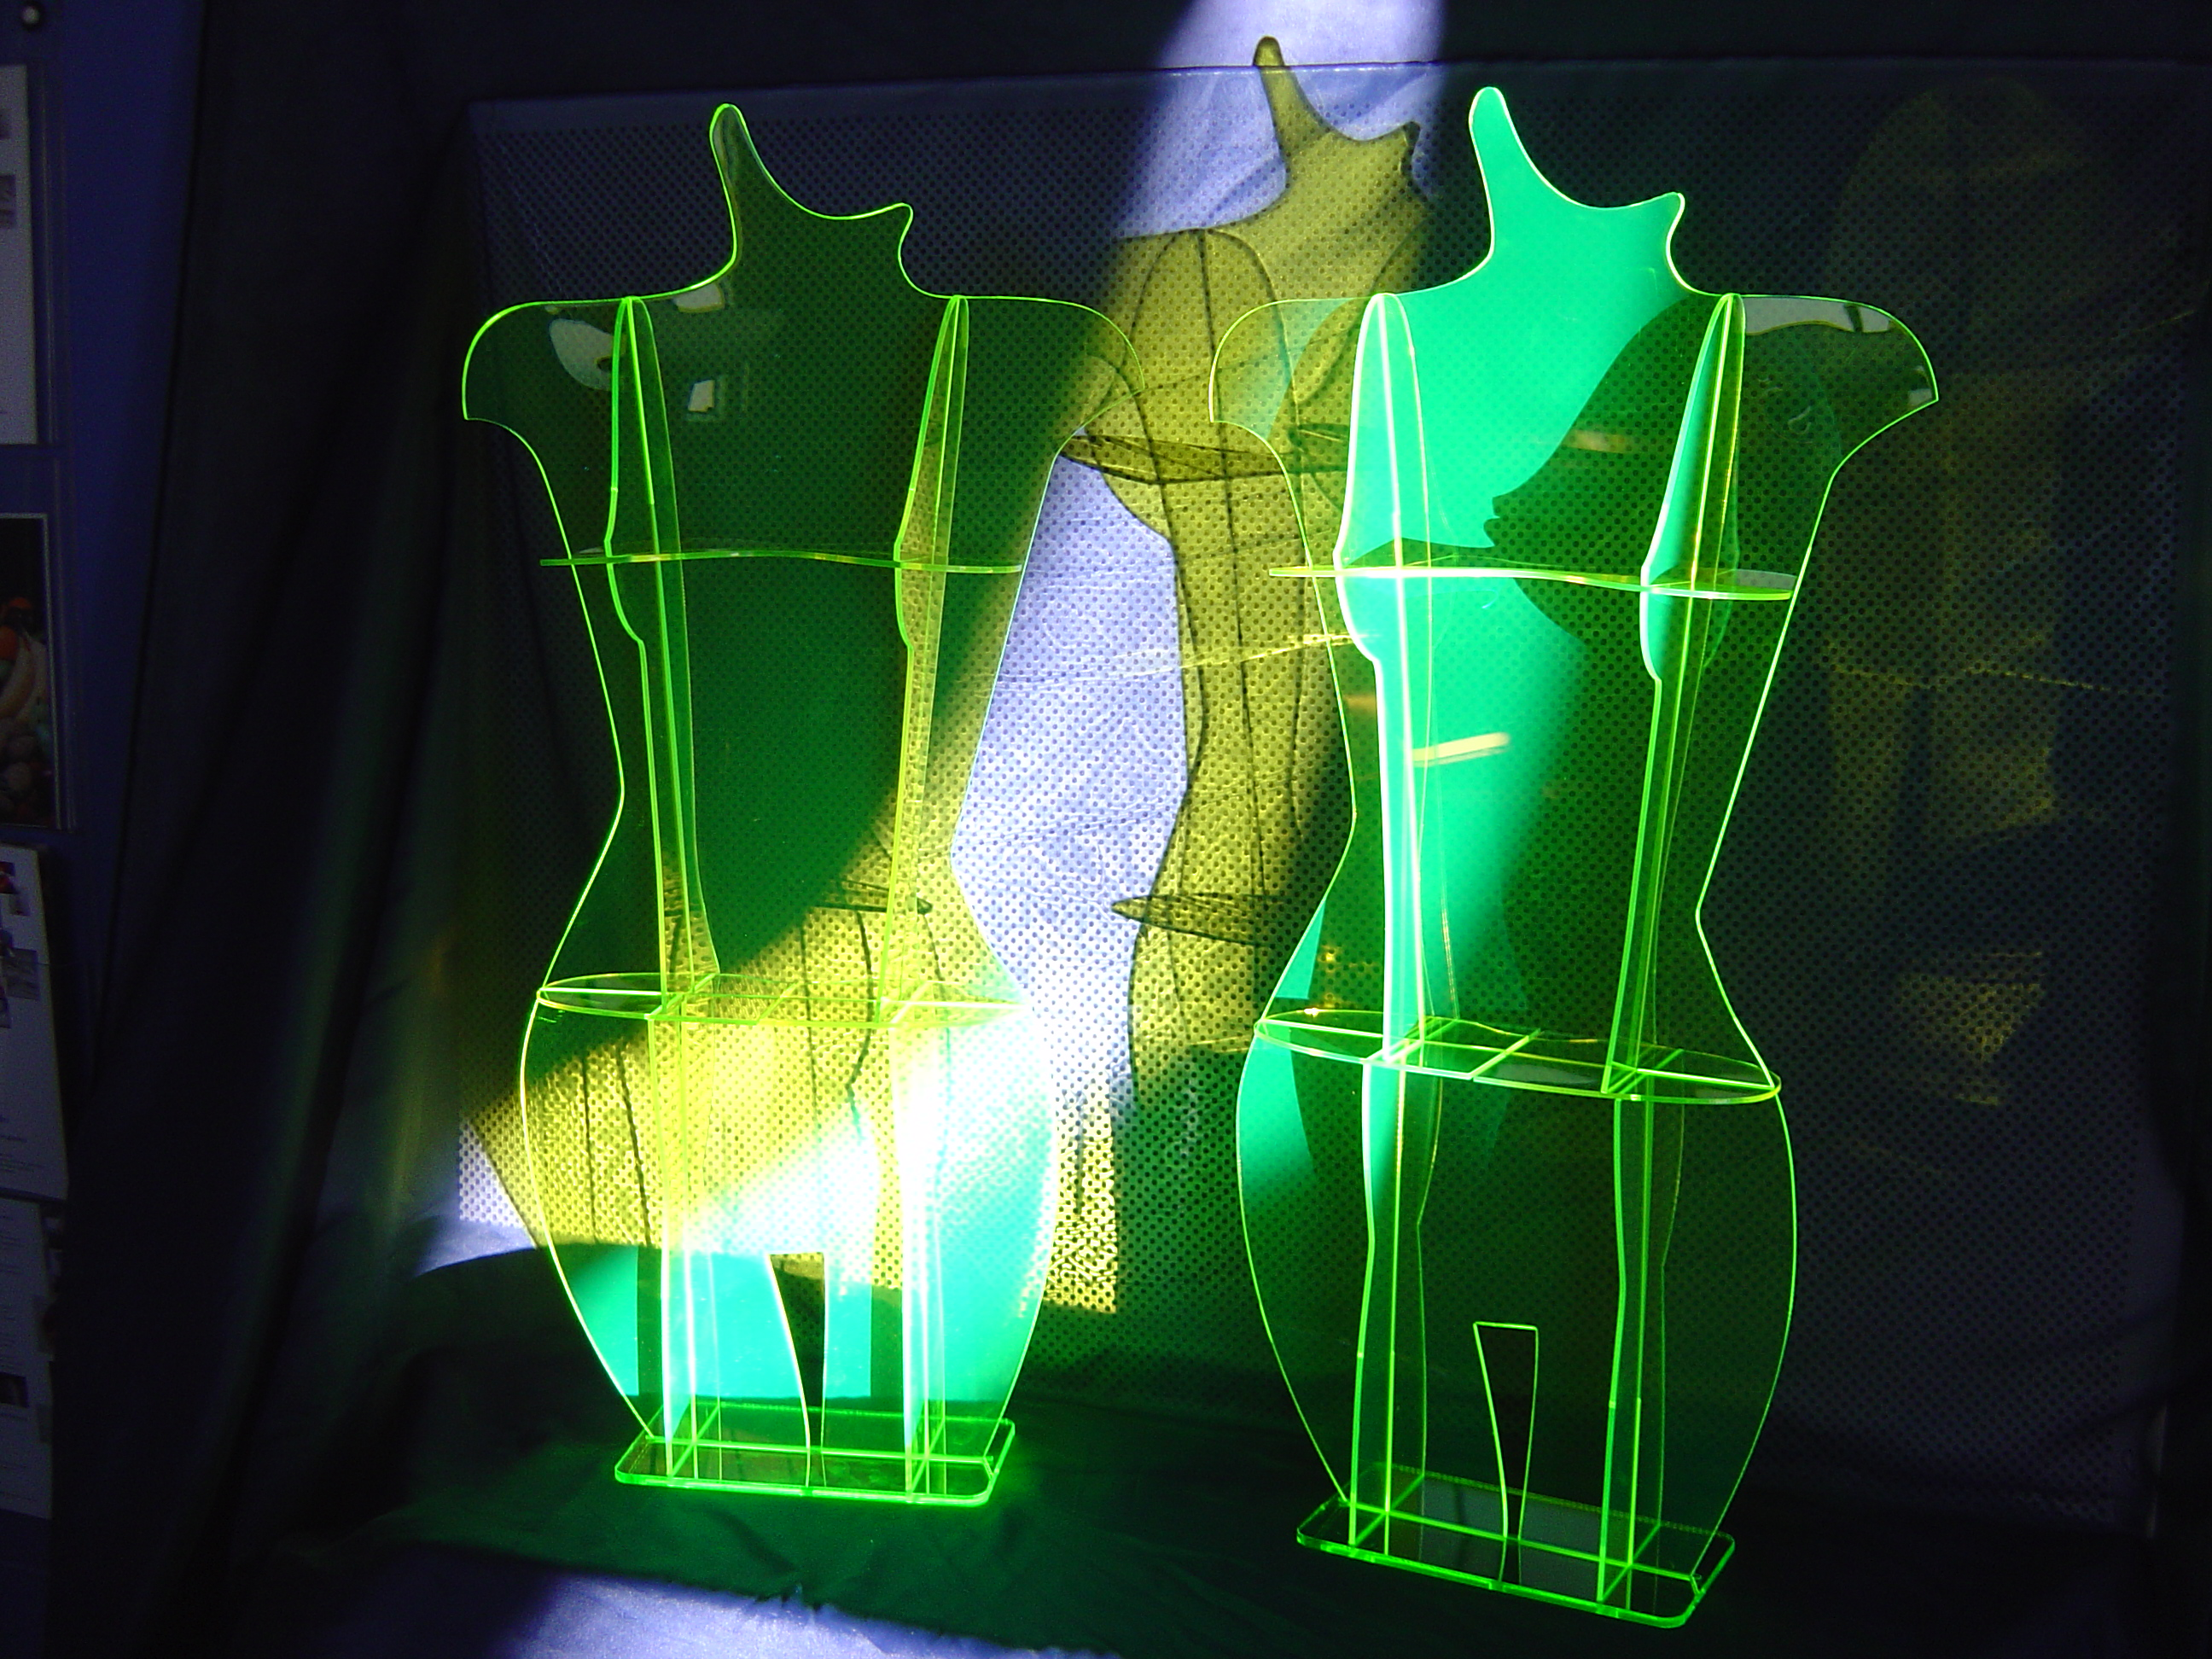 Neon green display pieces shaped like female bodies